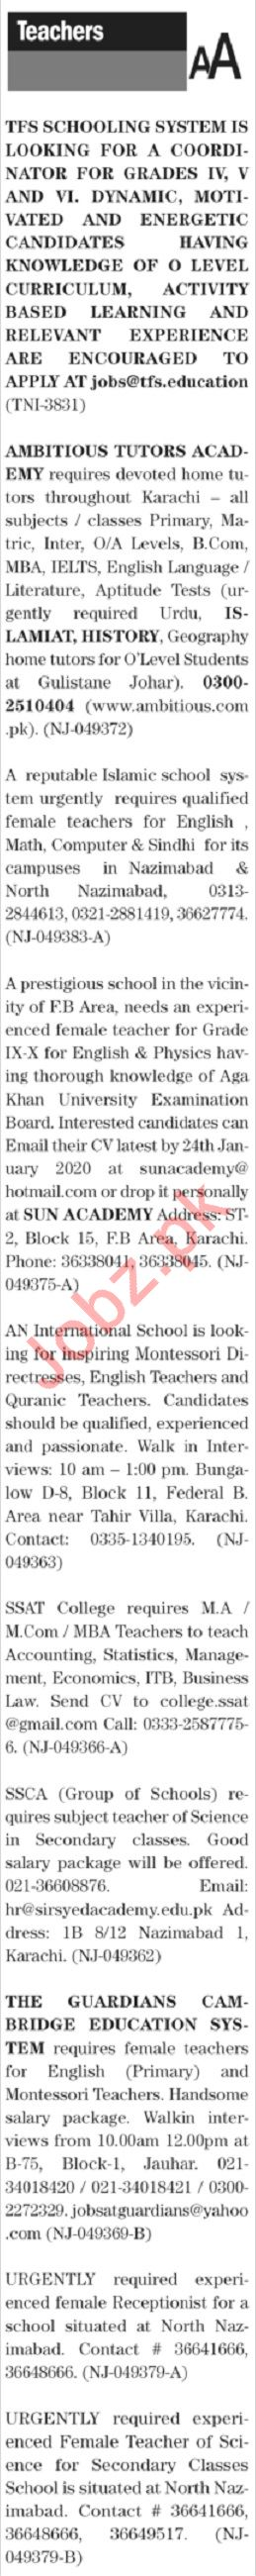 The News Sunday Classified Ads 19 Jan 2020 for Teachers